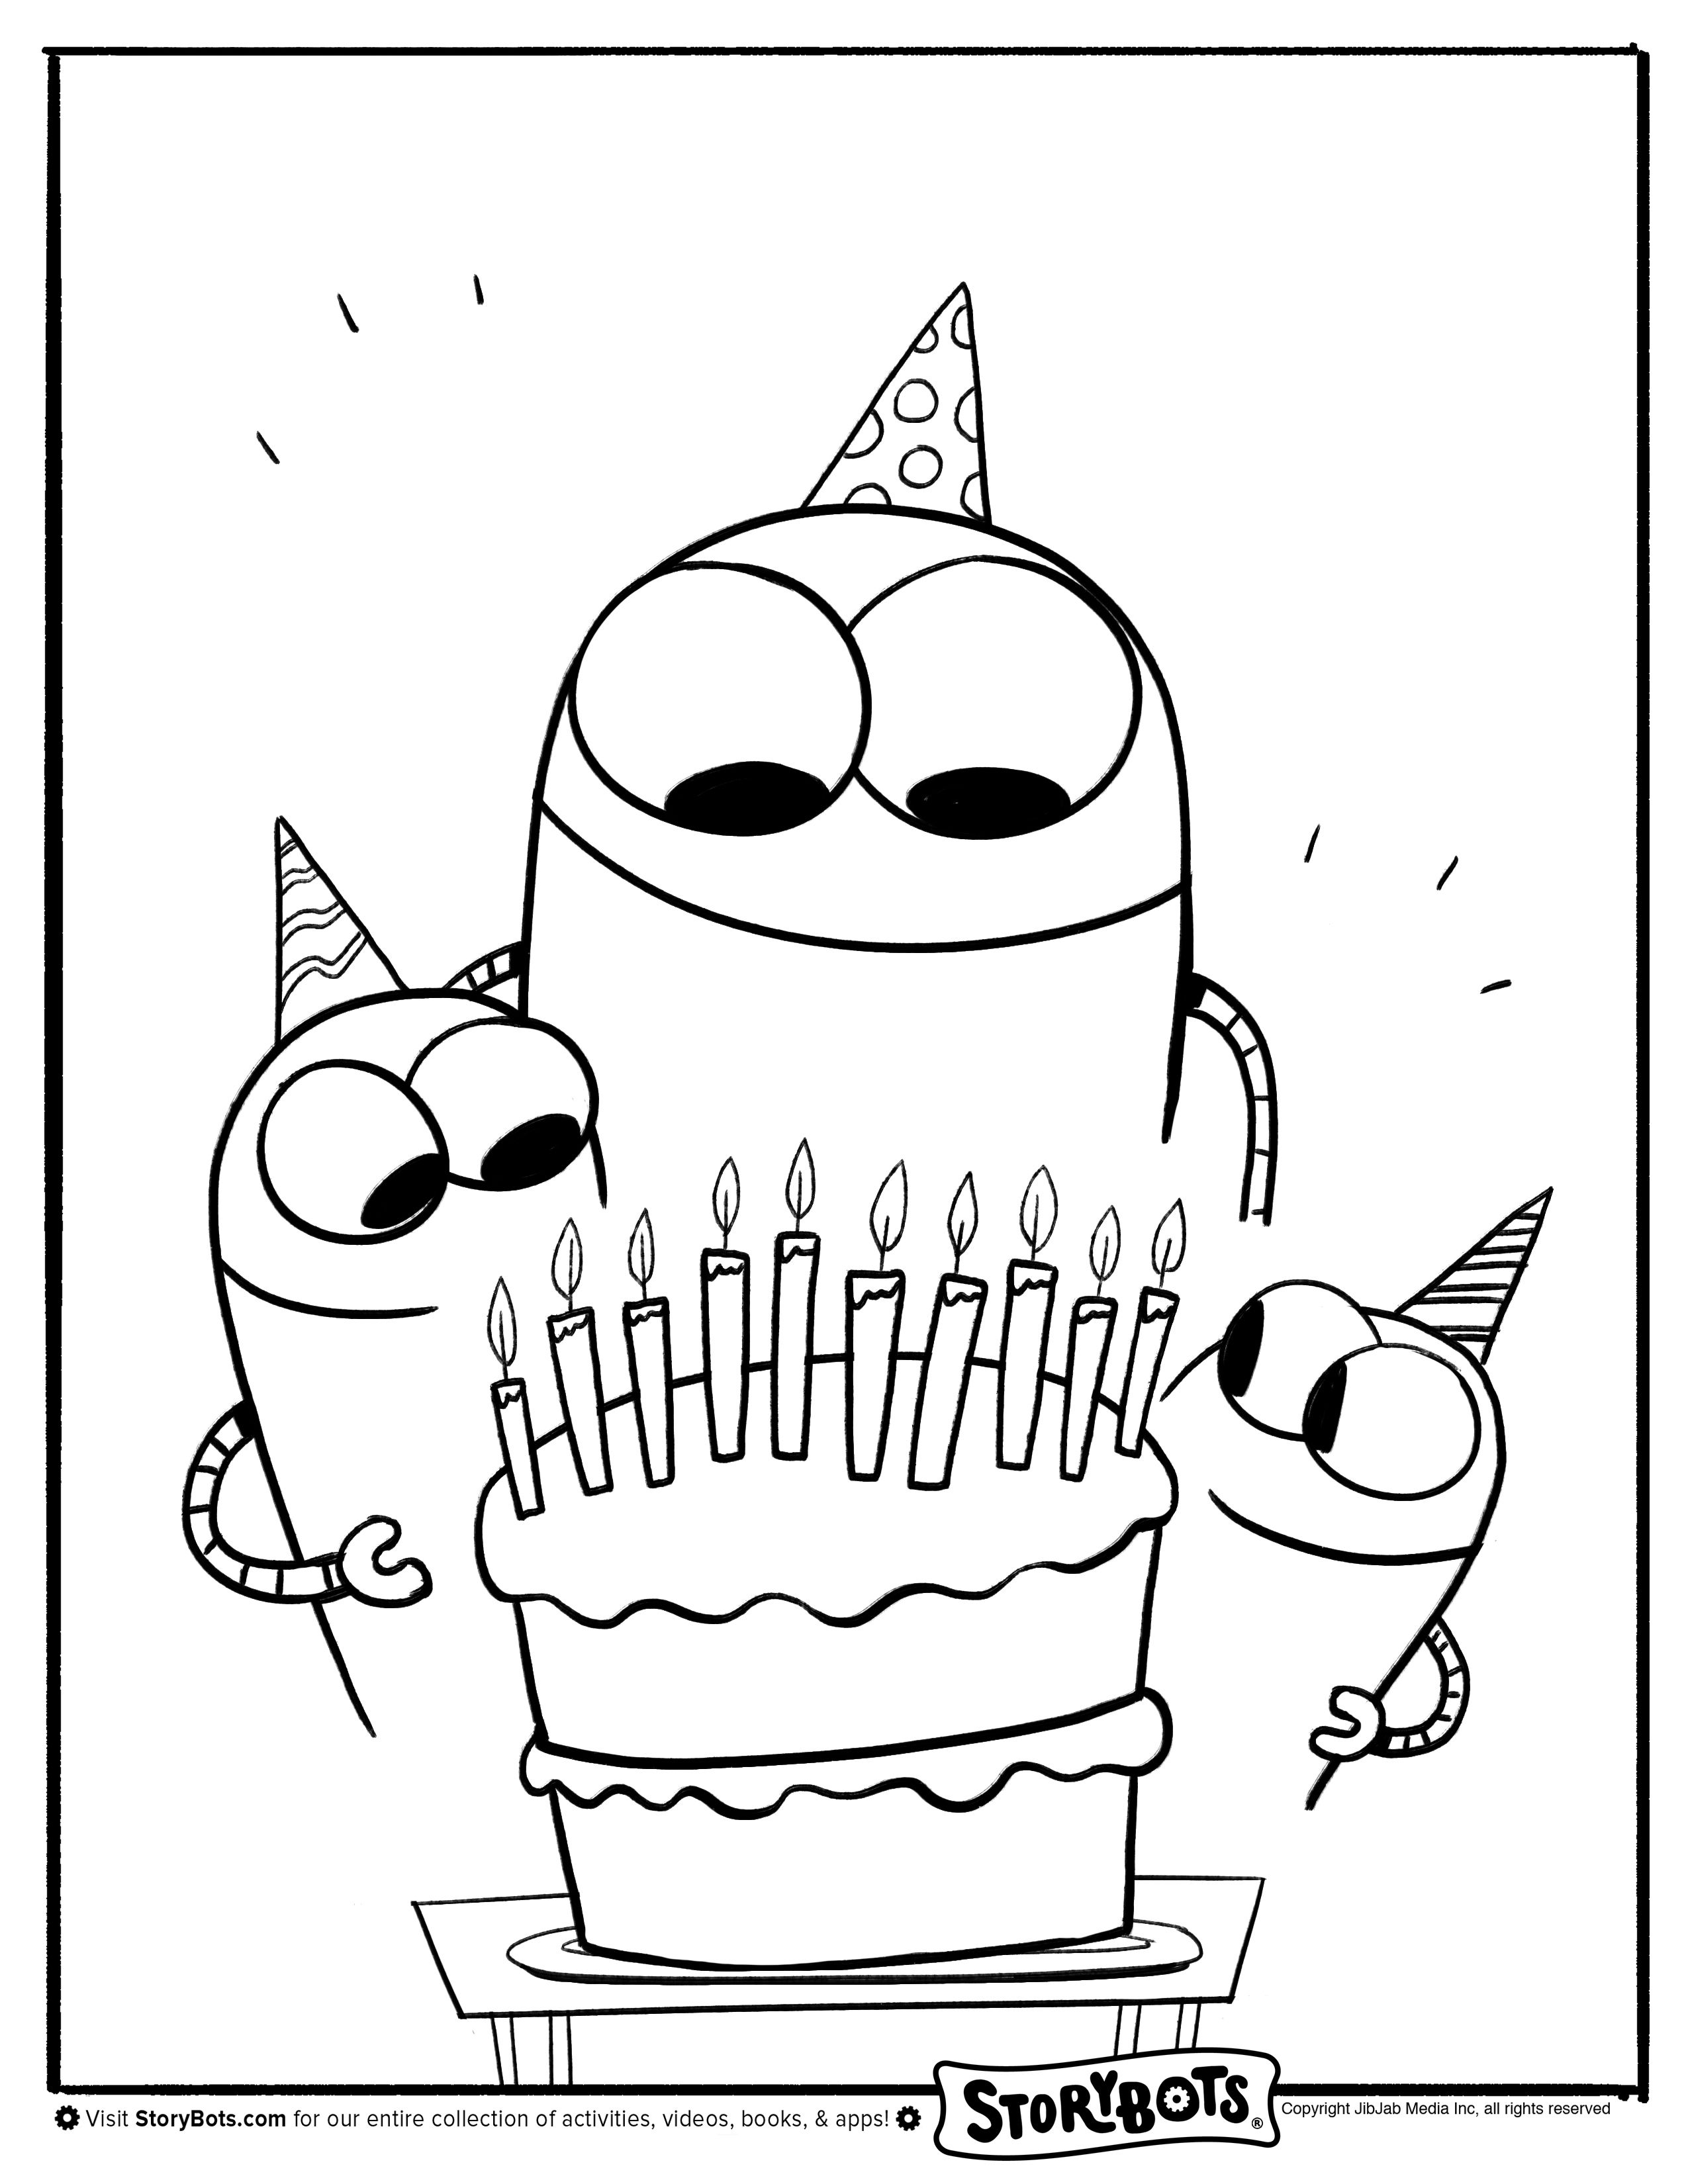 Birthday Cake Storybots Coloring Pages